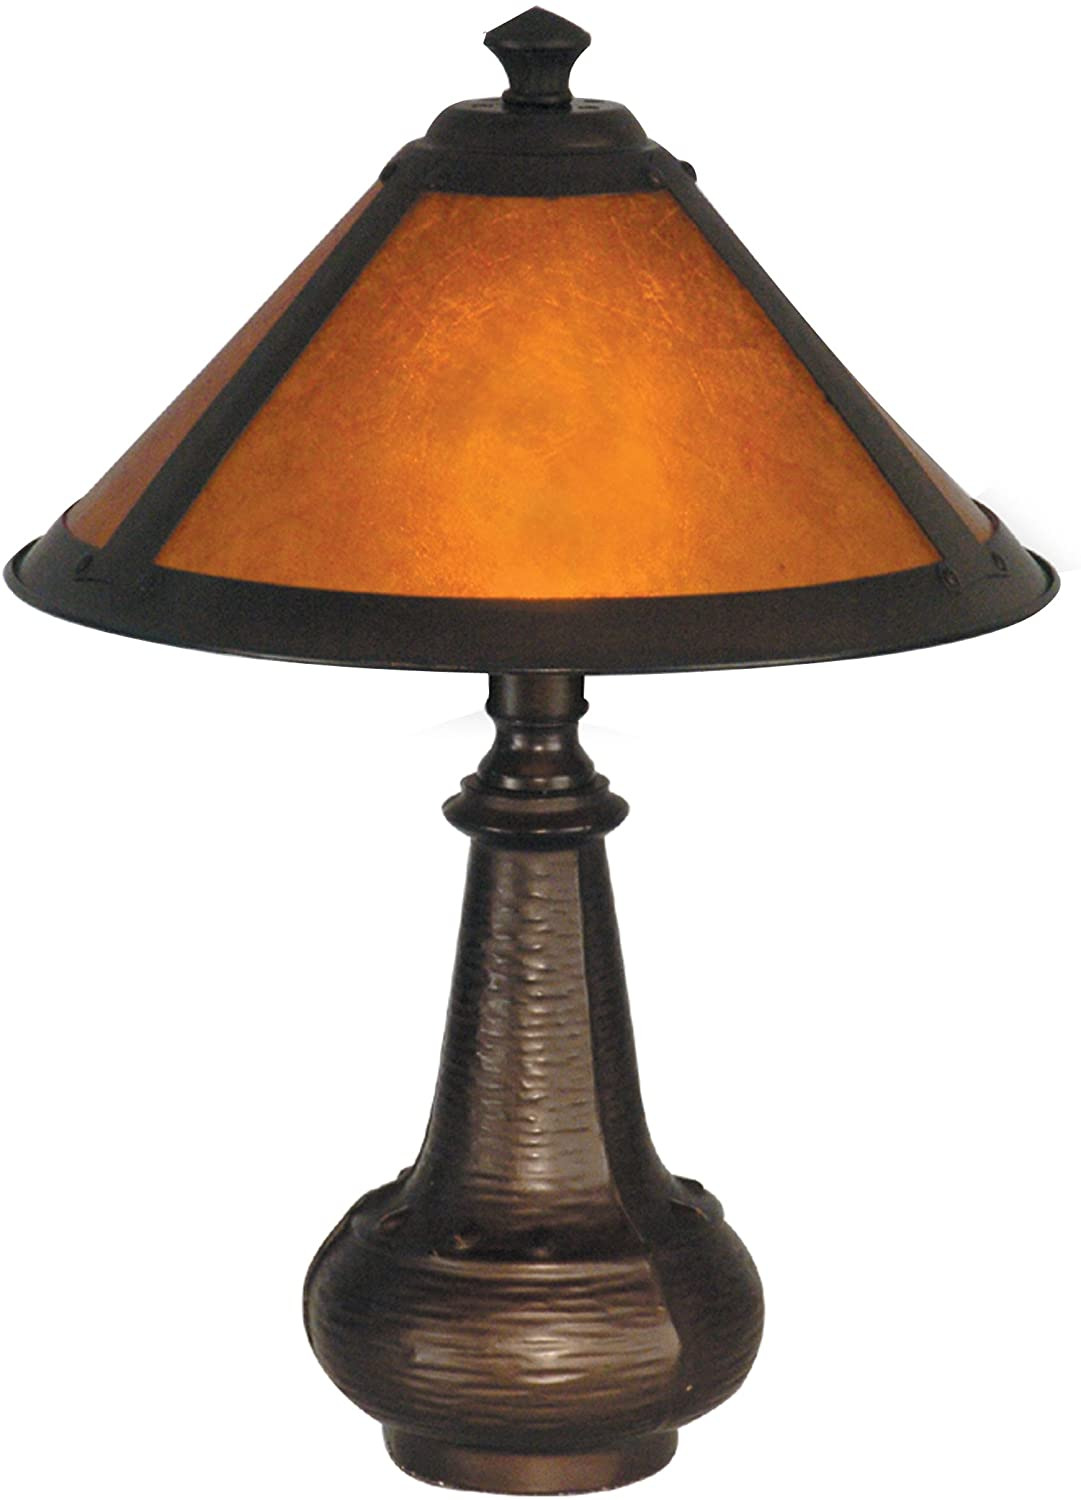 Dale Tiffany Lamps History Beautiful Details About Dale Tiffany Hunter Mica Accent Lamp Antique Bronze & Mica Shade Home Lights New